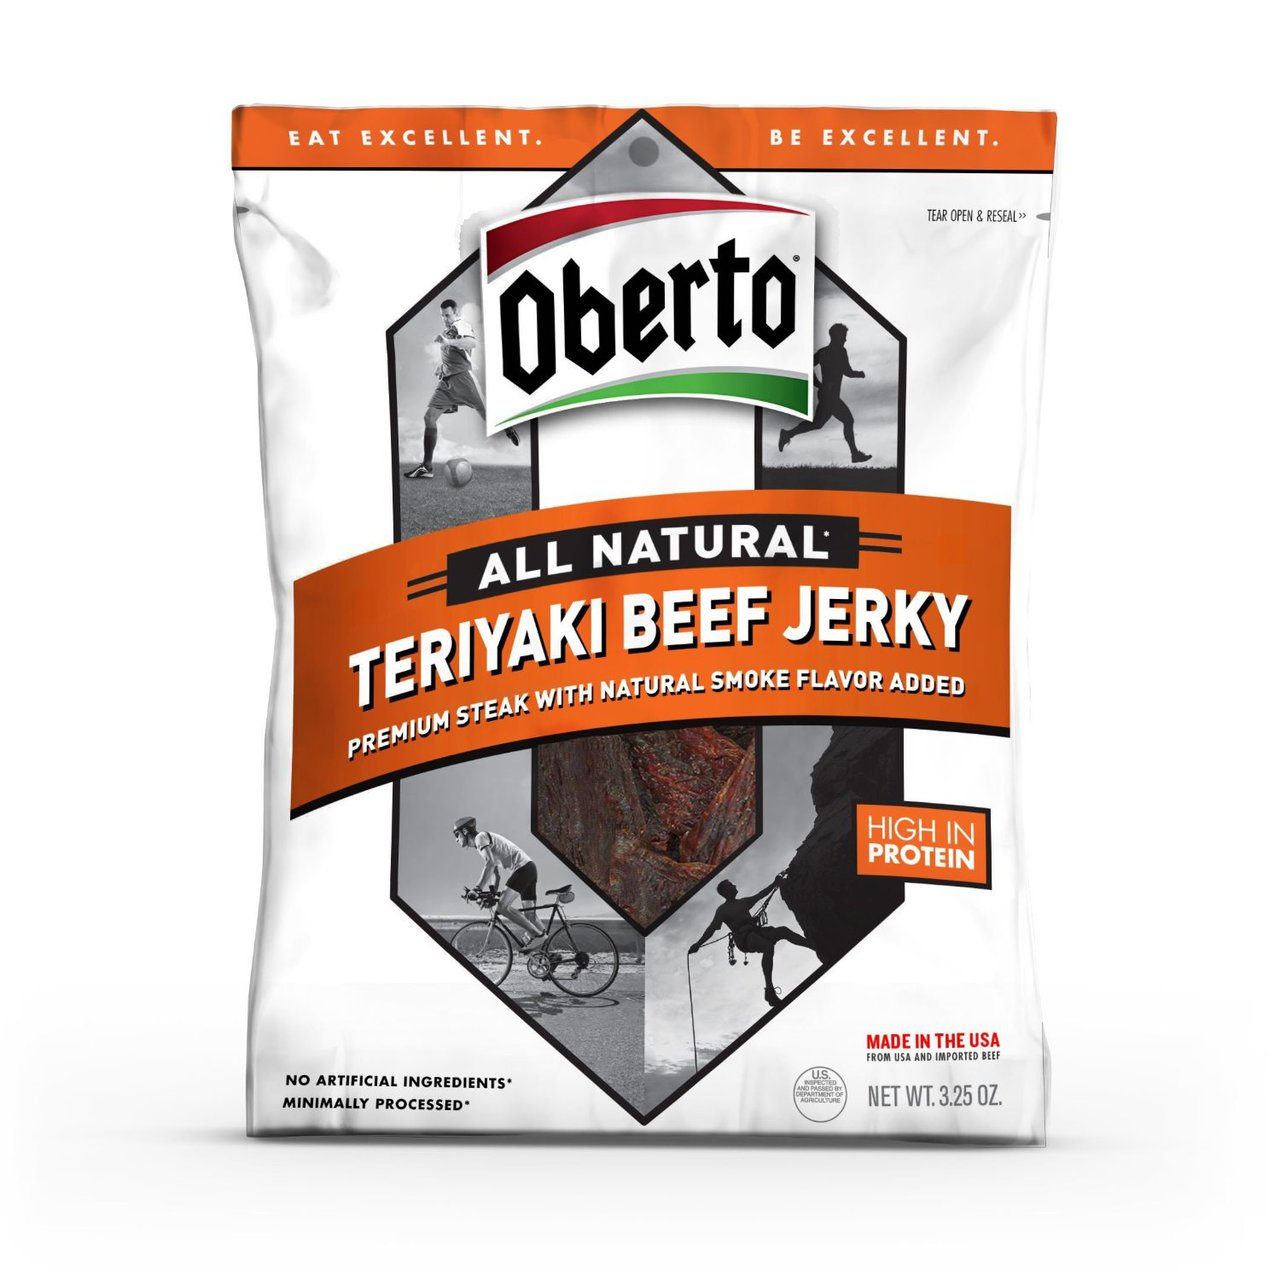 8 PACKS : Oberto All Natural Teriyaki Beef Jerky, 3.25 ounce package